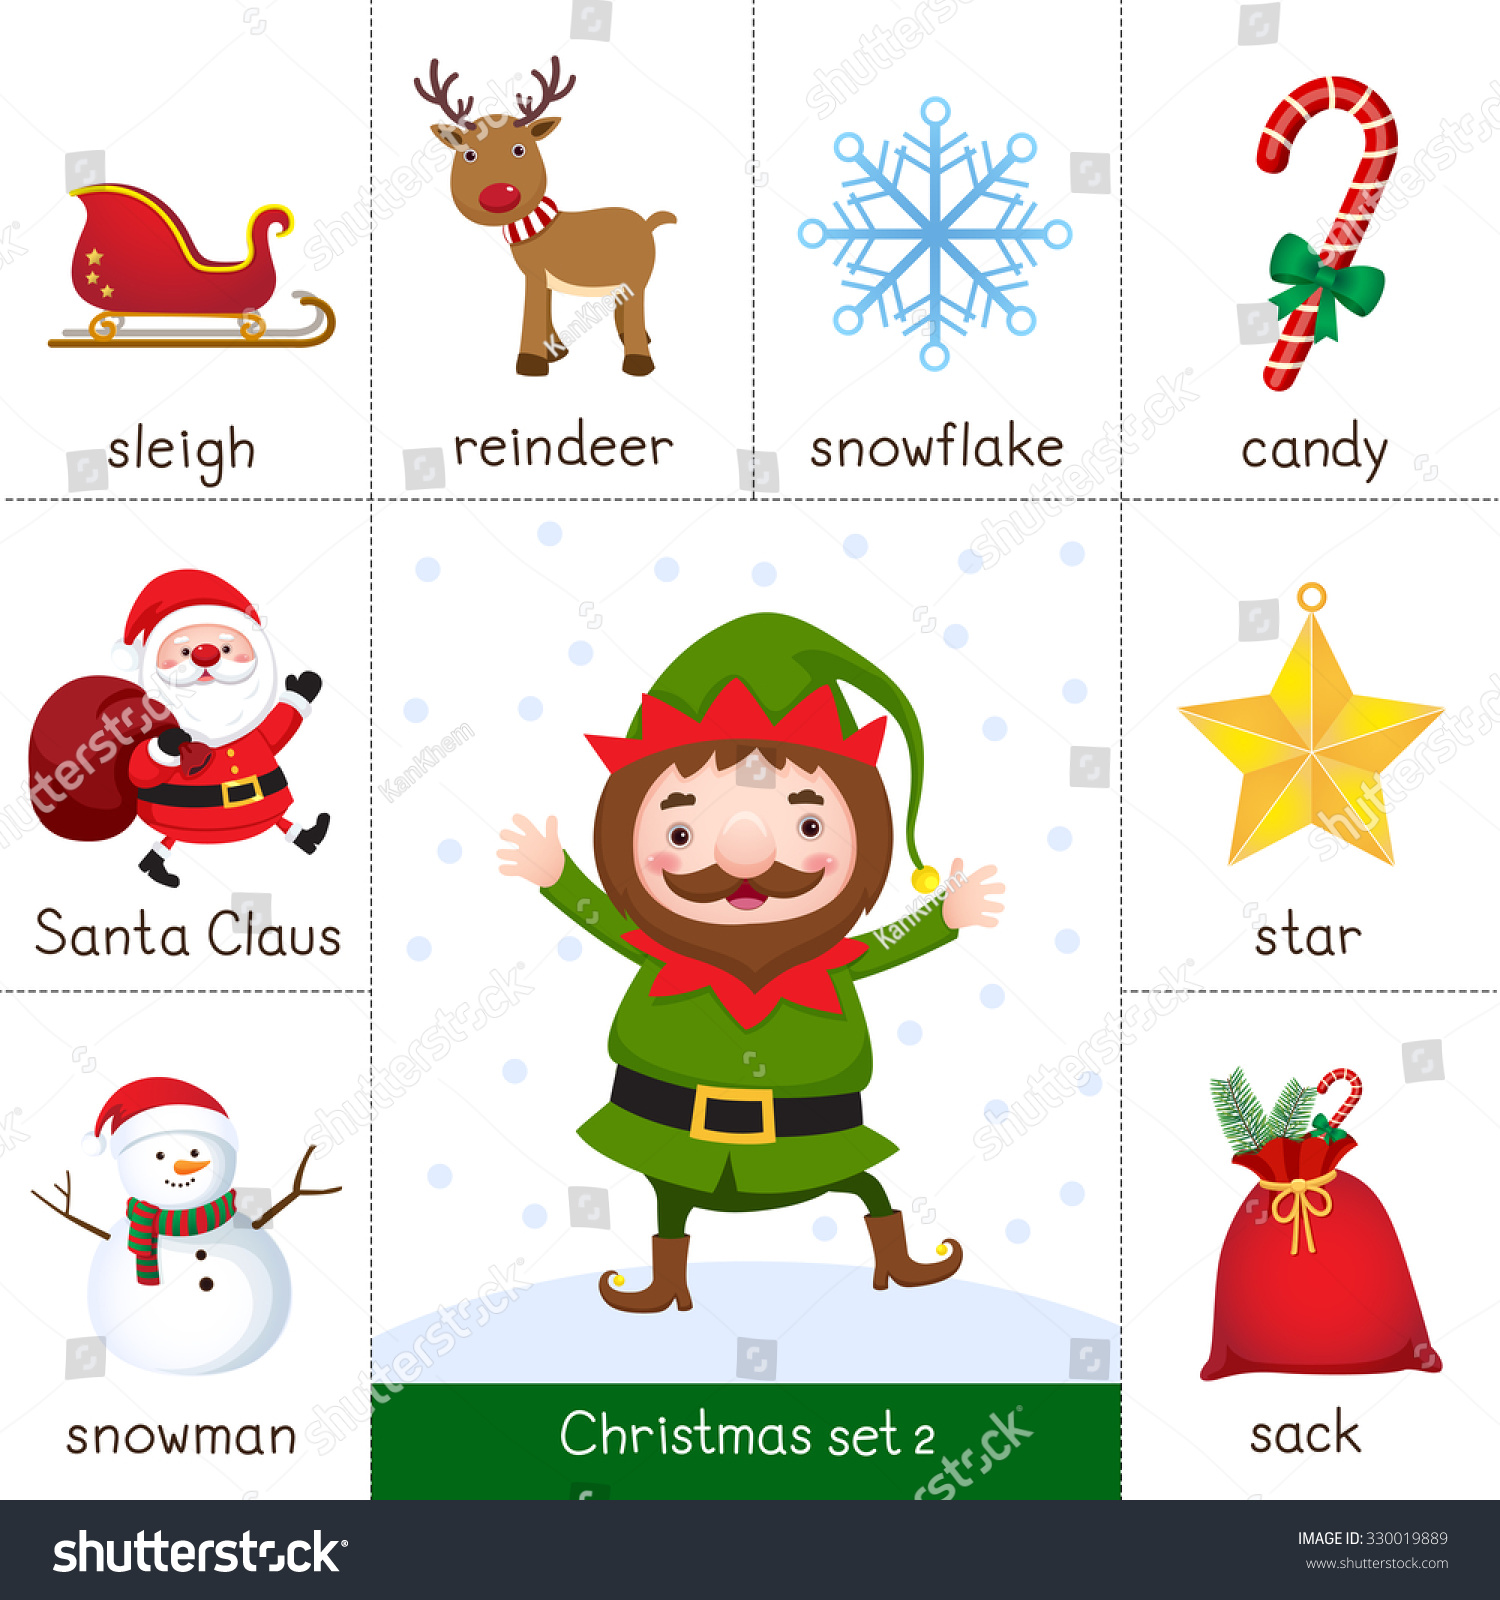 Worksheet Santa And Reindeer